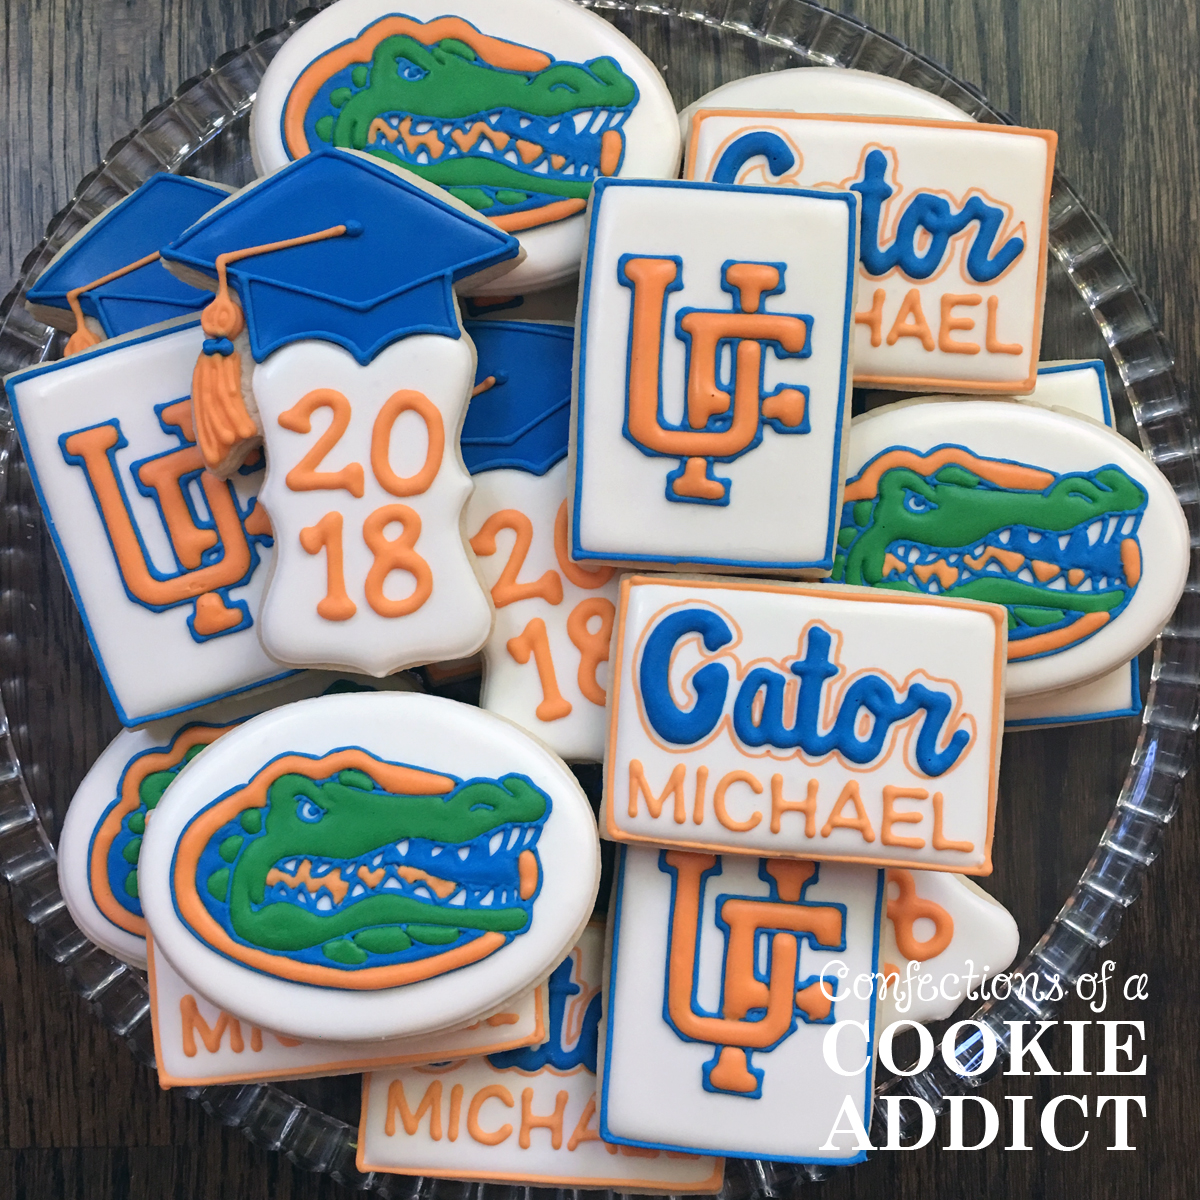 University of Florida Cookies